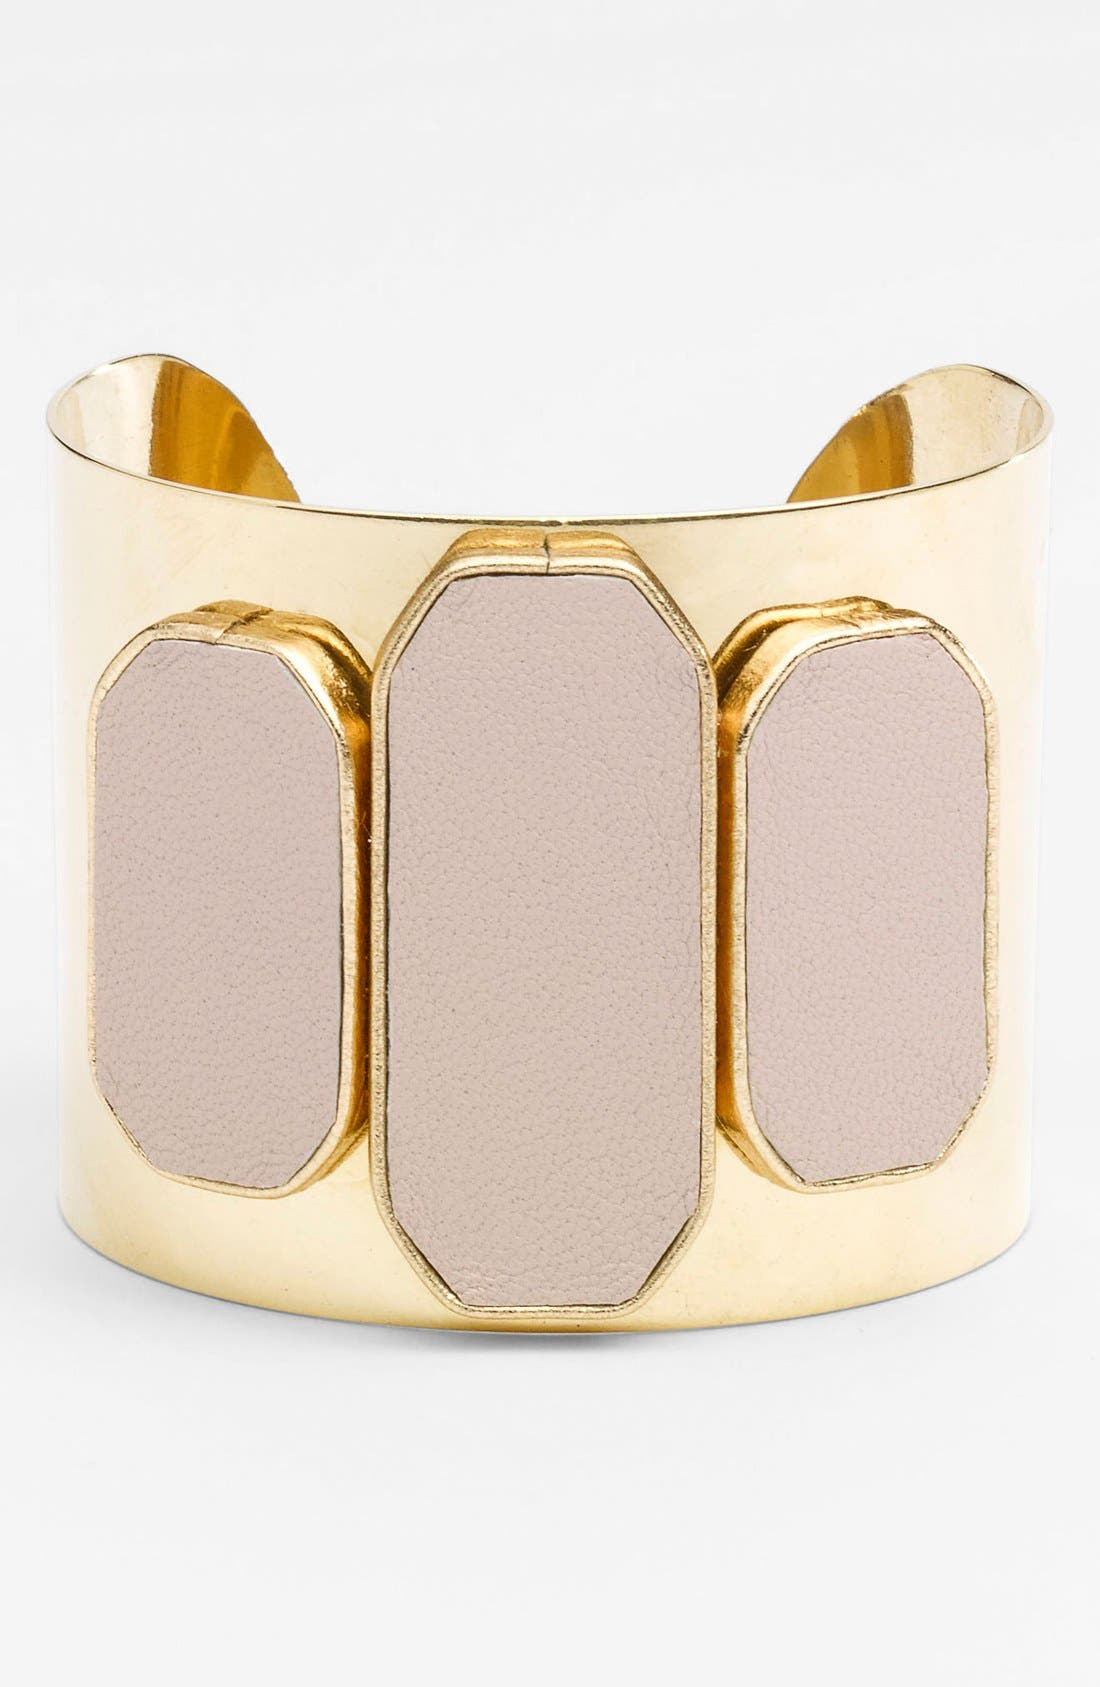 Alternate Image 1 Selected - Sandy Hyun Leather & Metal Cuff